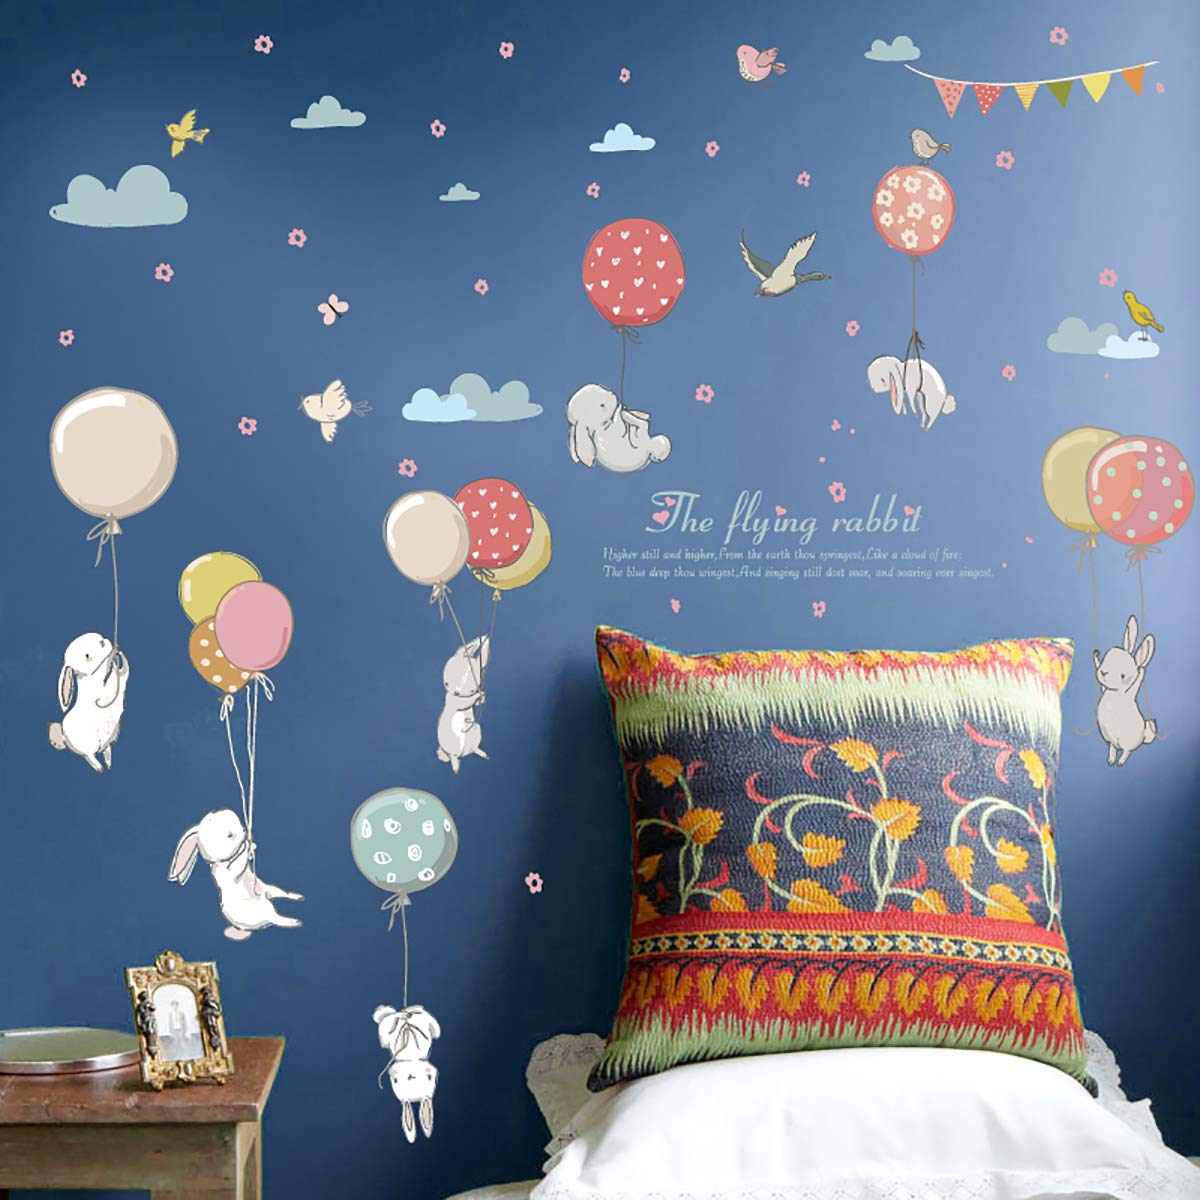 Cartoon Animal Wall Sticker for Kids Room Decoration Nursery Decoration Jungle Theme Peel /& Stick Wall Decals for Baby Playroom Decor Style 5